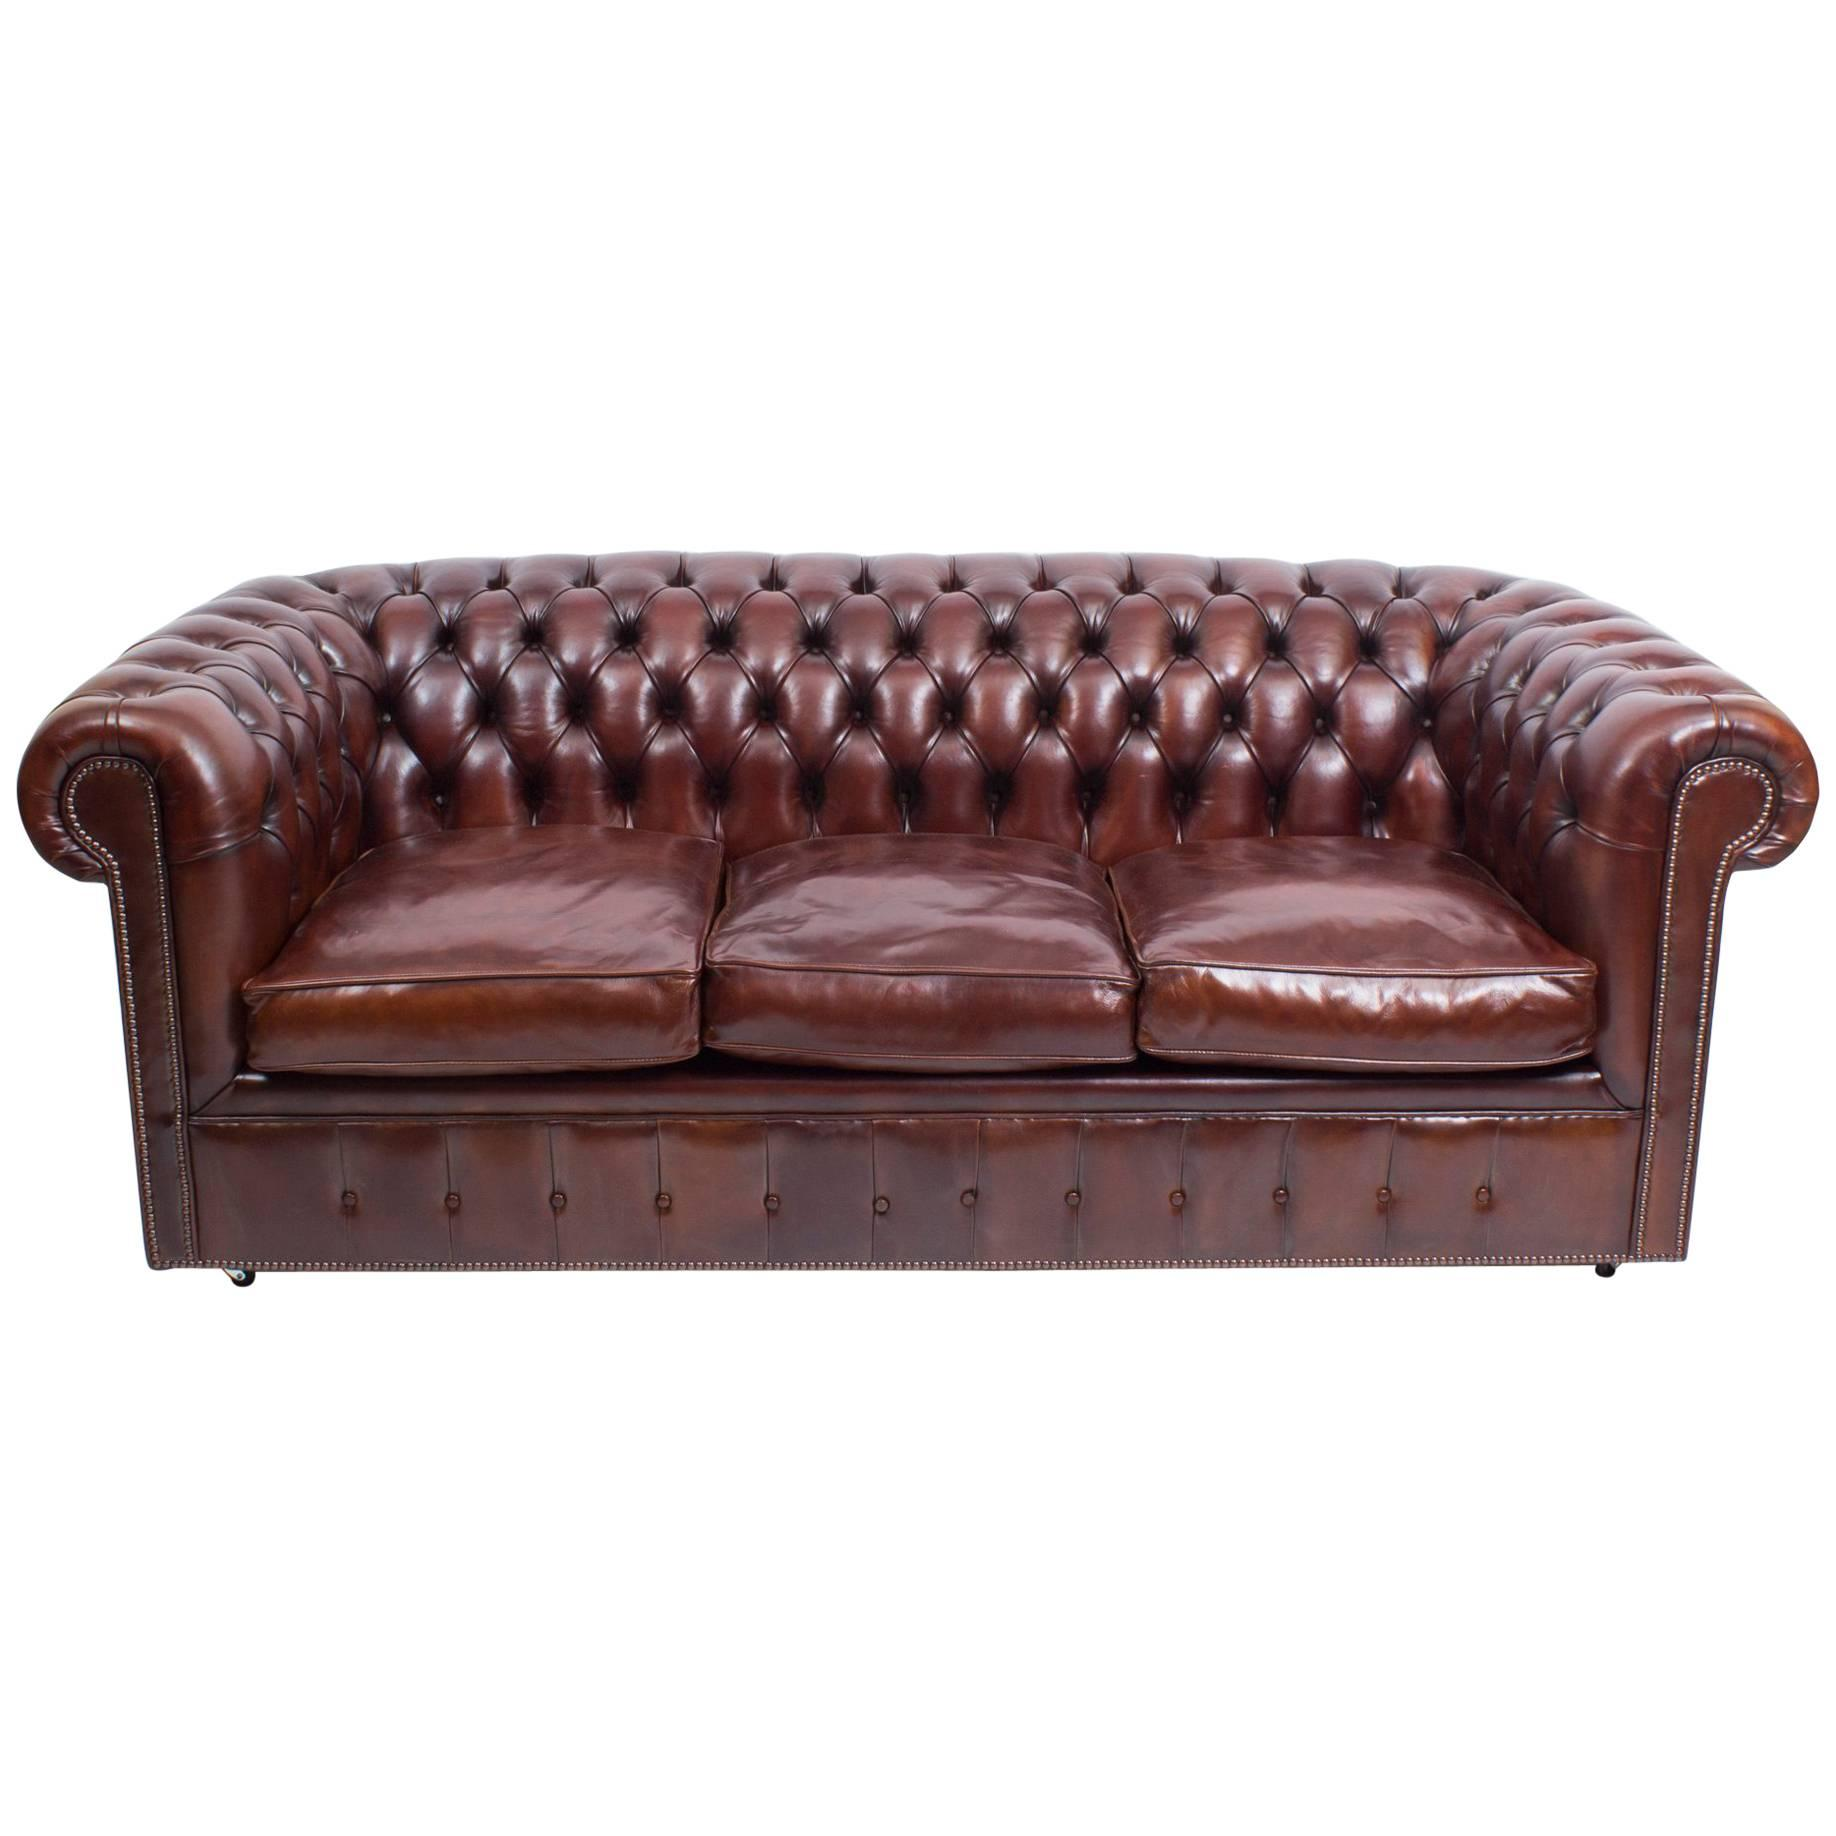 Bespoke English Leather Chesterfield Sofa Bed BBO For Sale